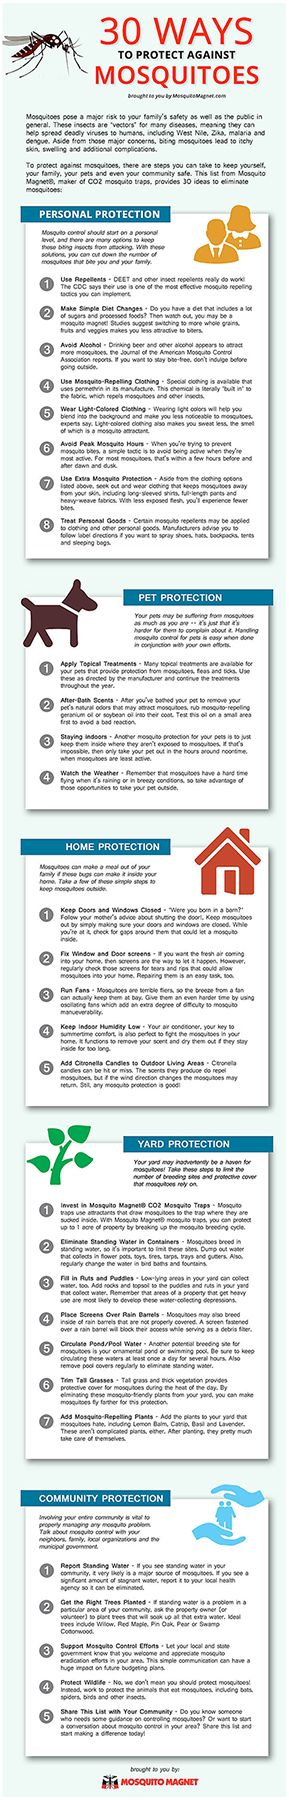 13 best Mosquito Control Solutions images on Pinterest Wildlife - control plan